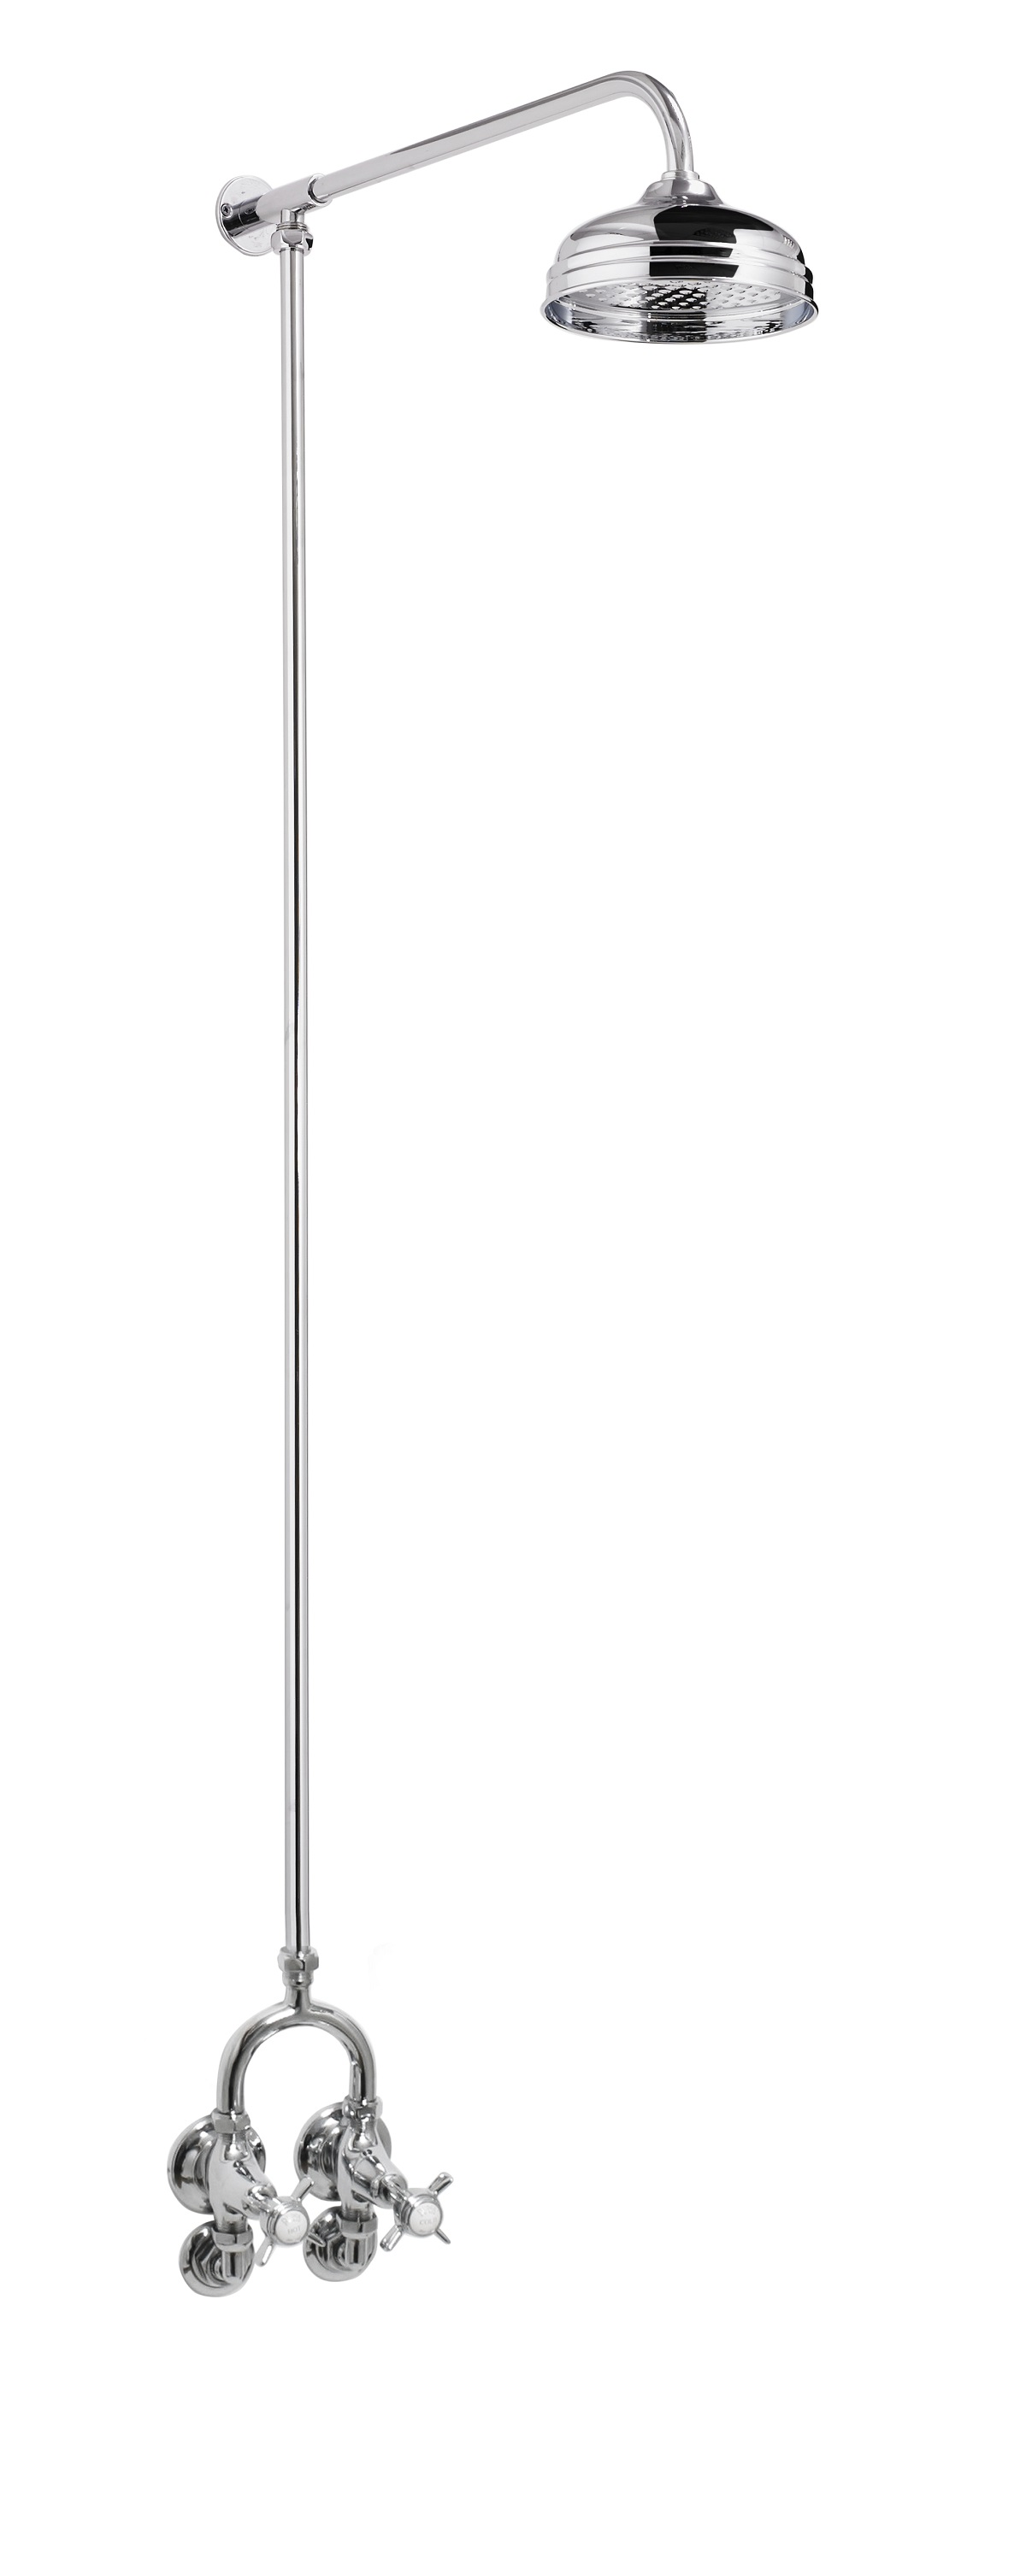 flags pole picture garden flag holder piece american flagpole ideas revamped wholesale design large best